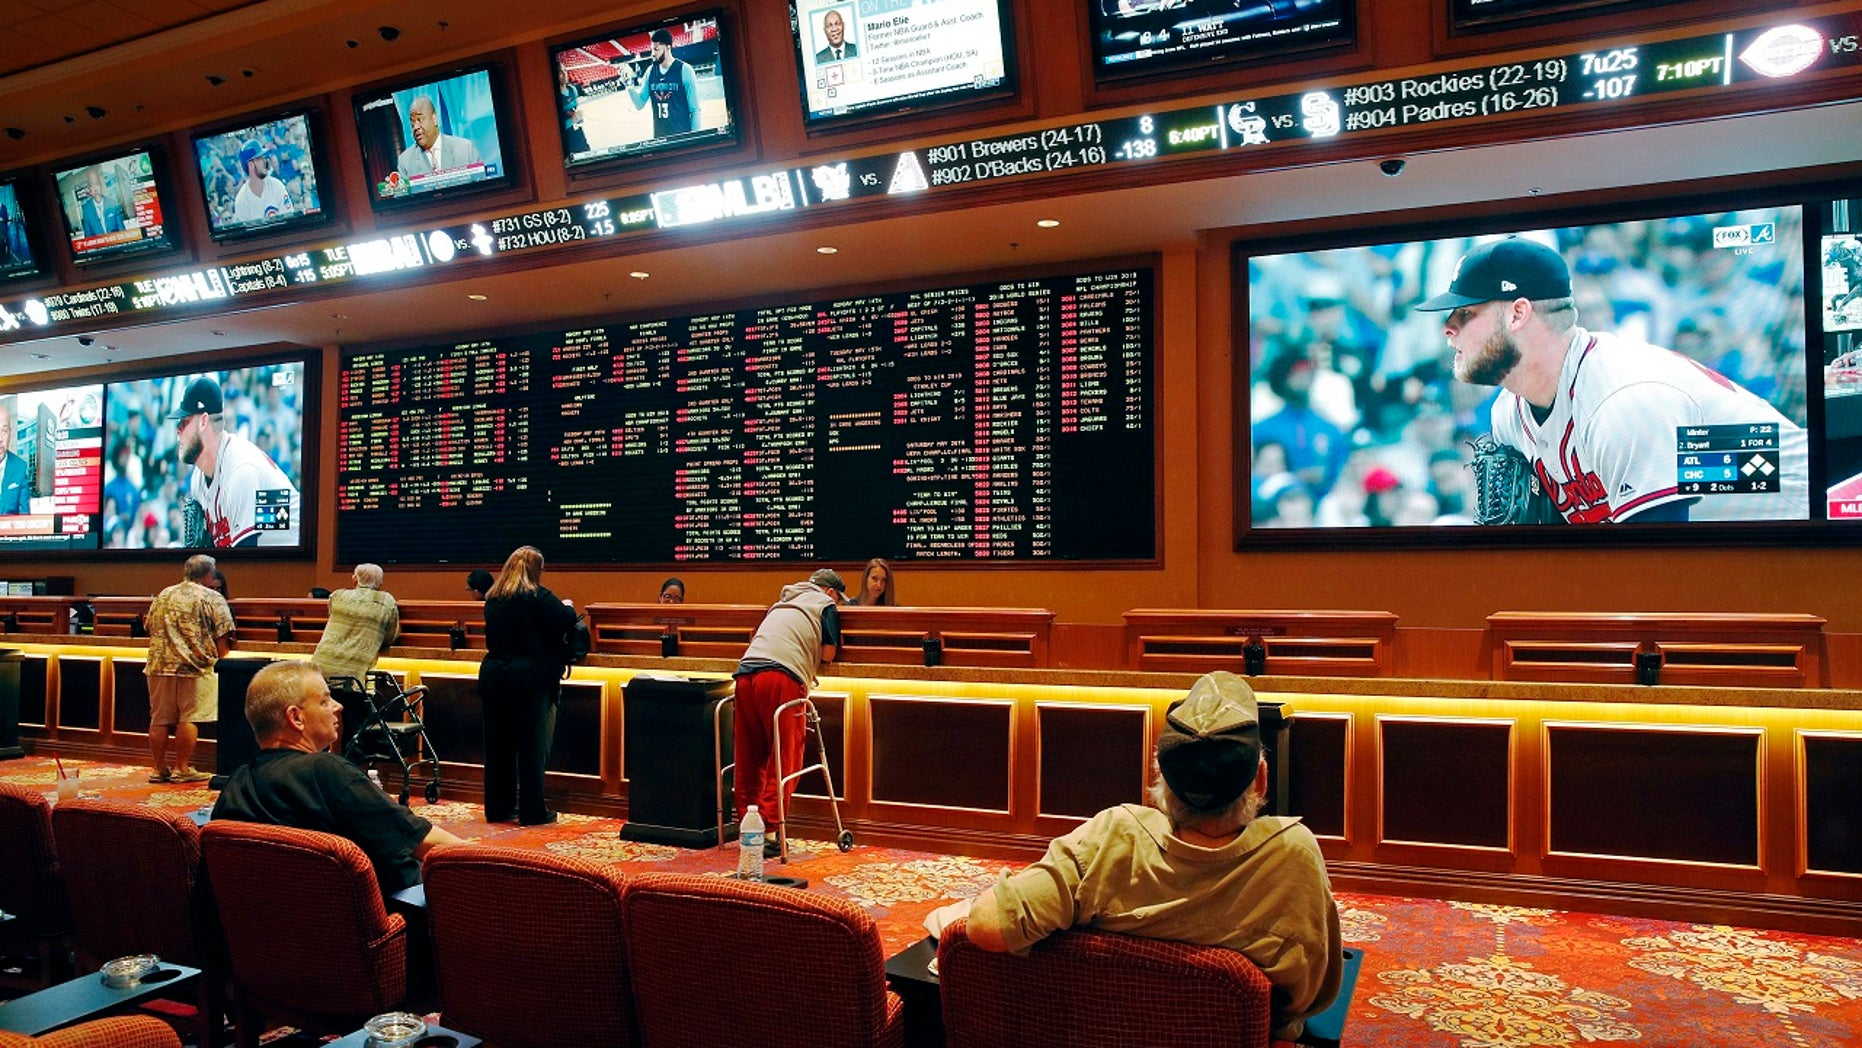 Mississippi gambling regulators approved rules on Thursday to legalize sports betting. Pictured: The South Point hotel and casino sports betting parlor in Las Vegas.